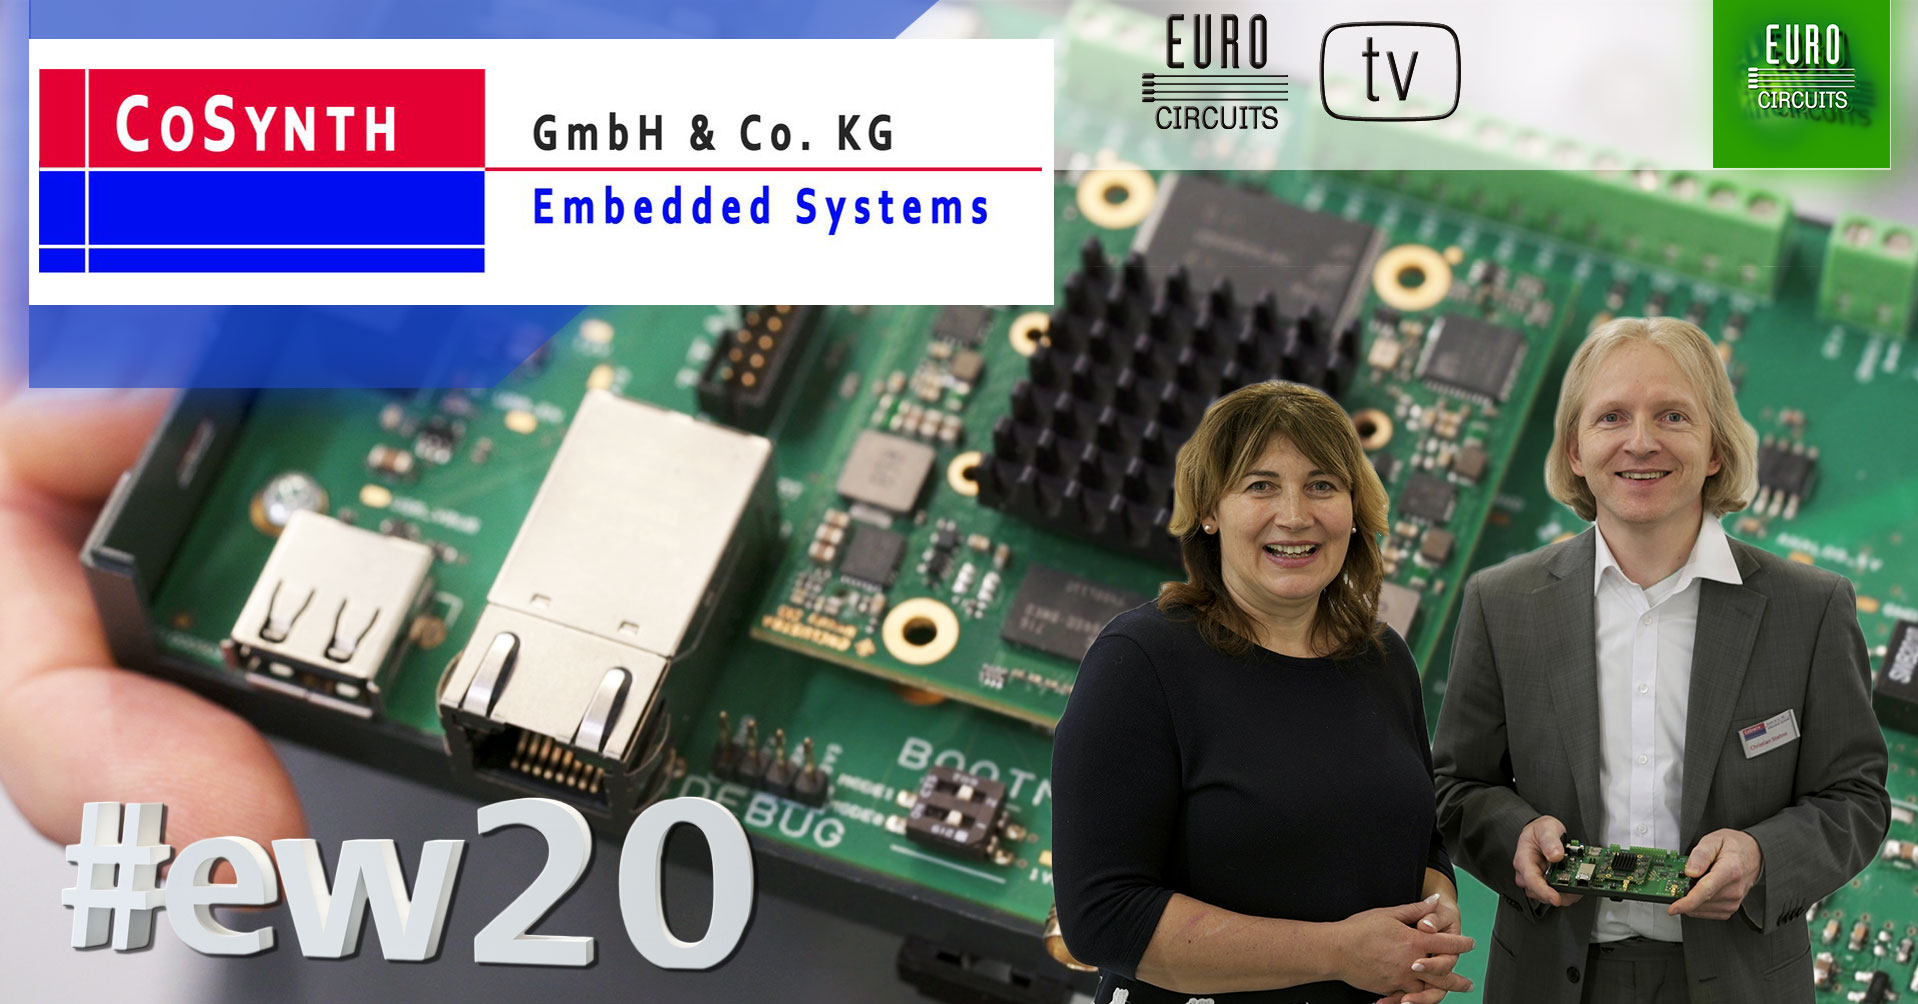 CoSynth @ew2020